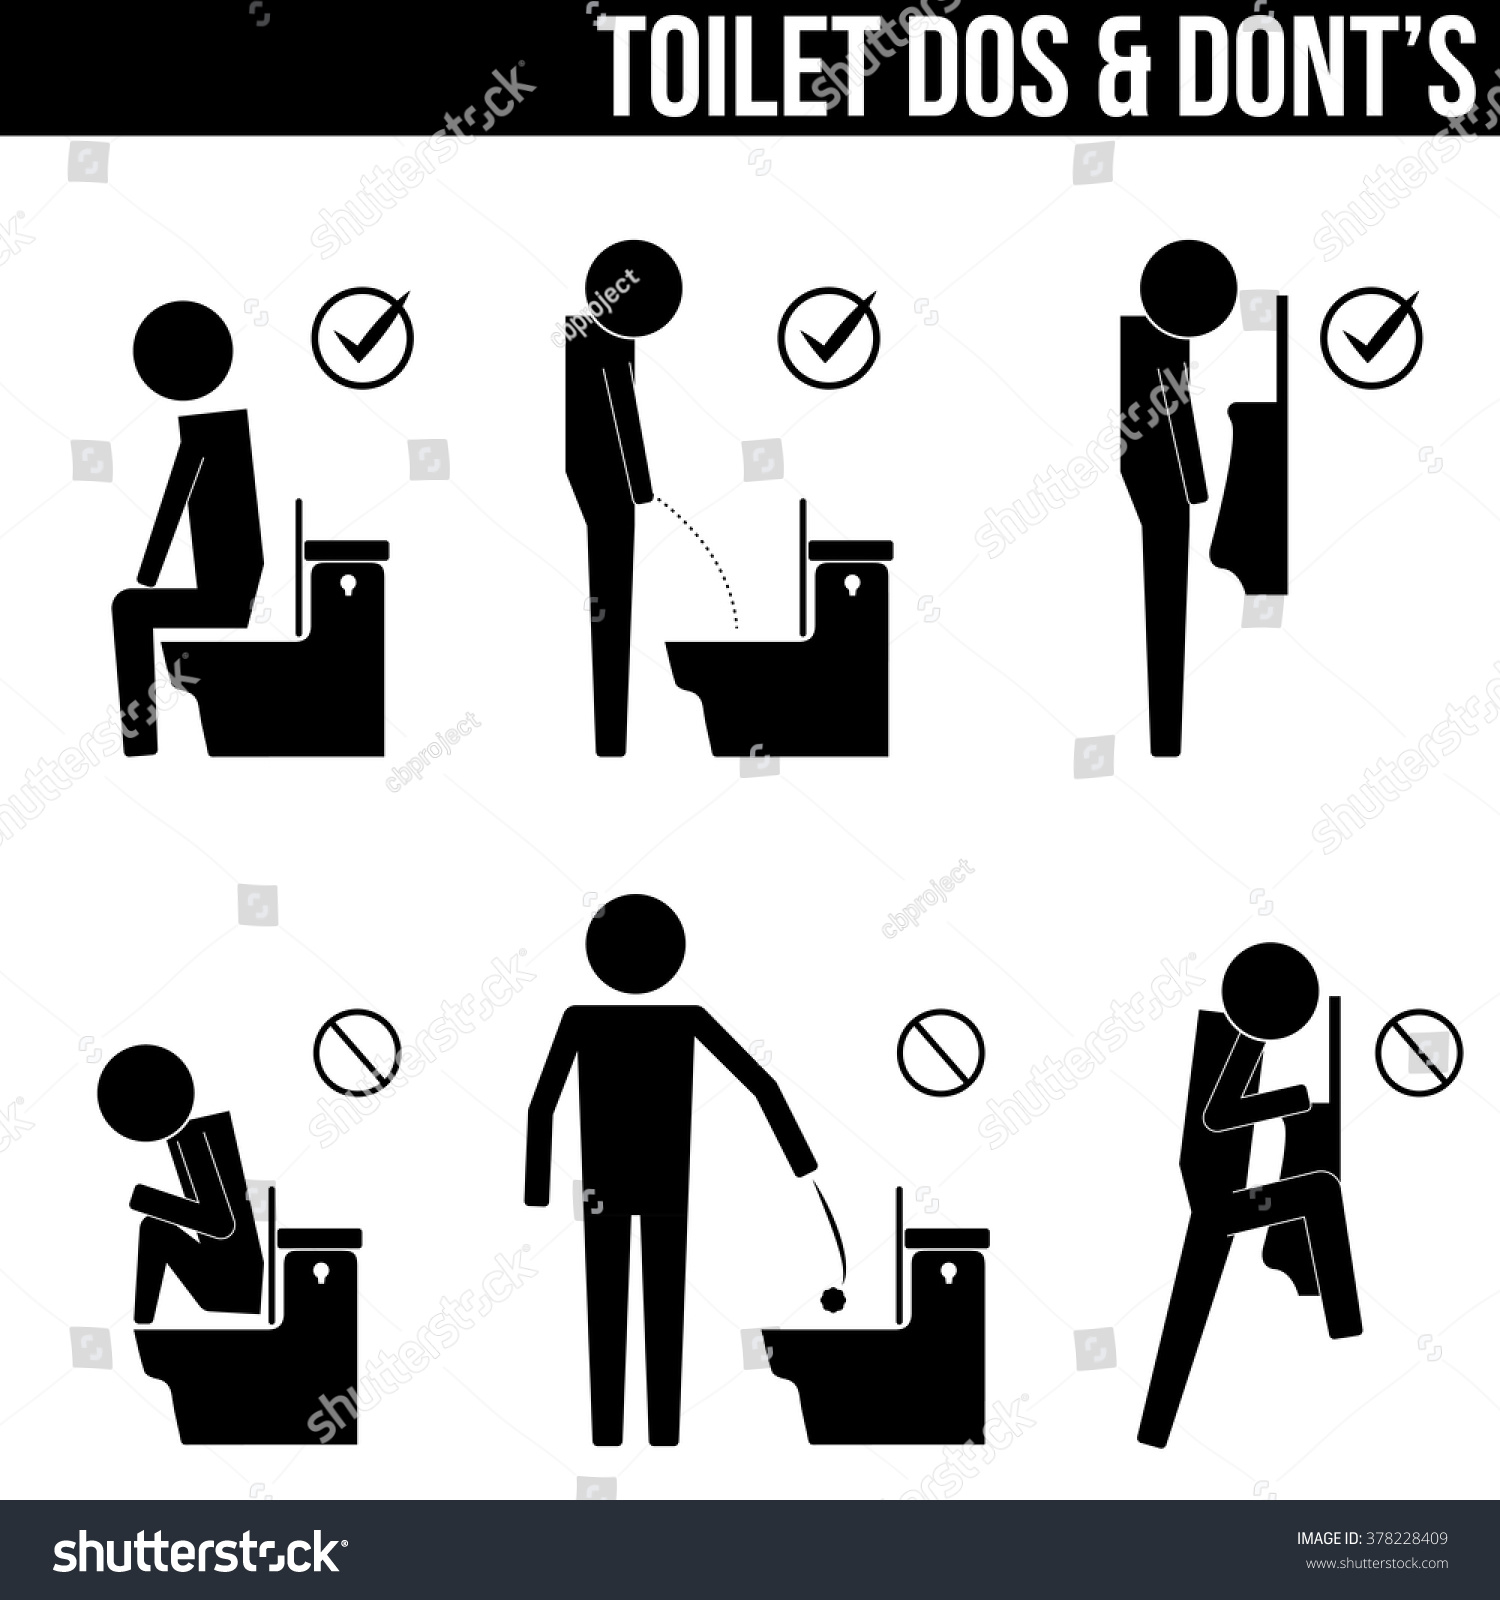 Toilet Do Donts Info Graphic Icon Stock Vector (Royalty Free ...